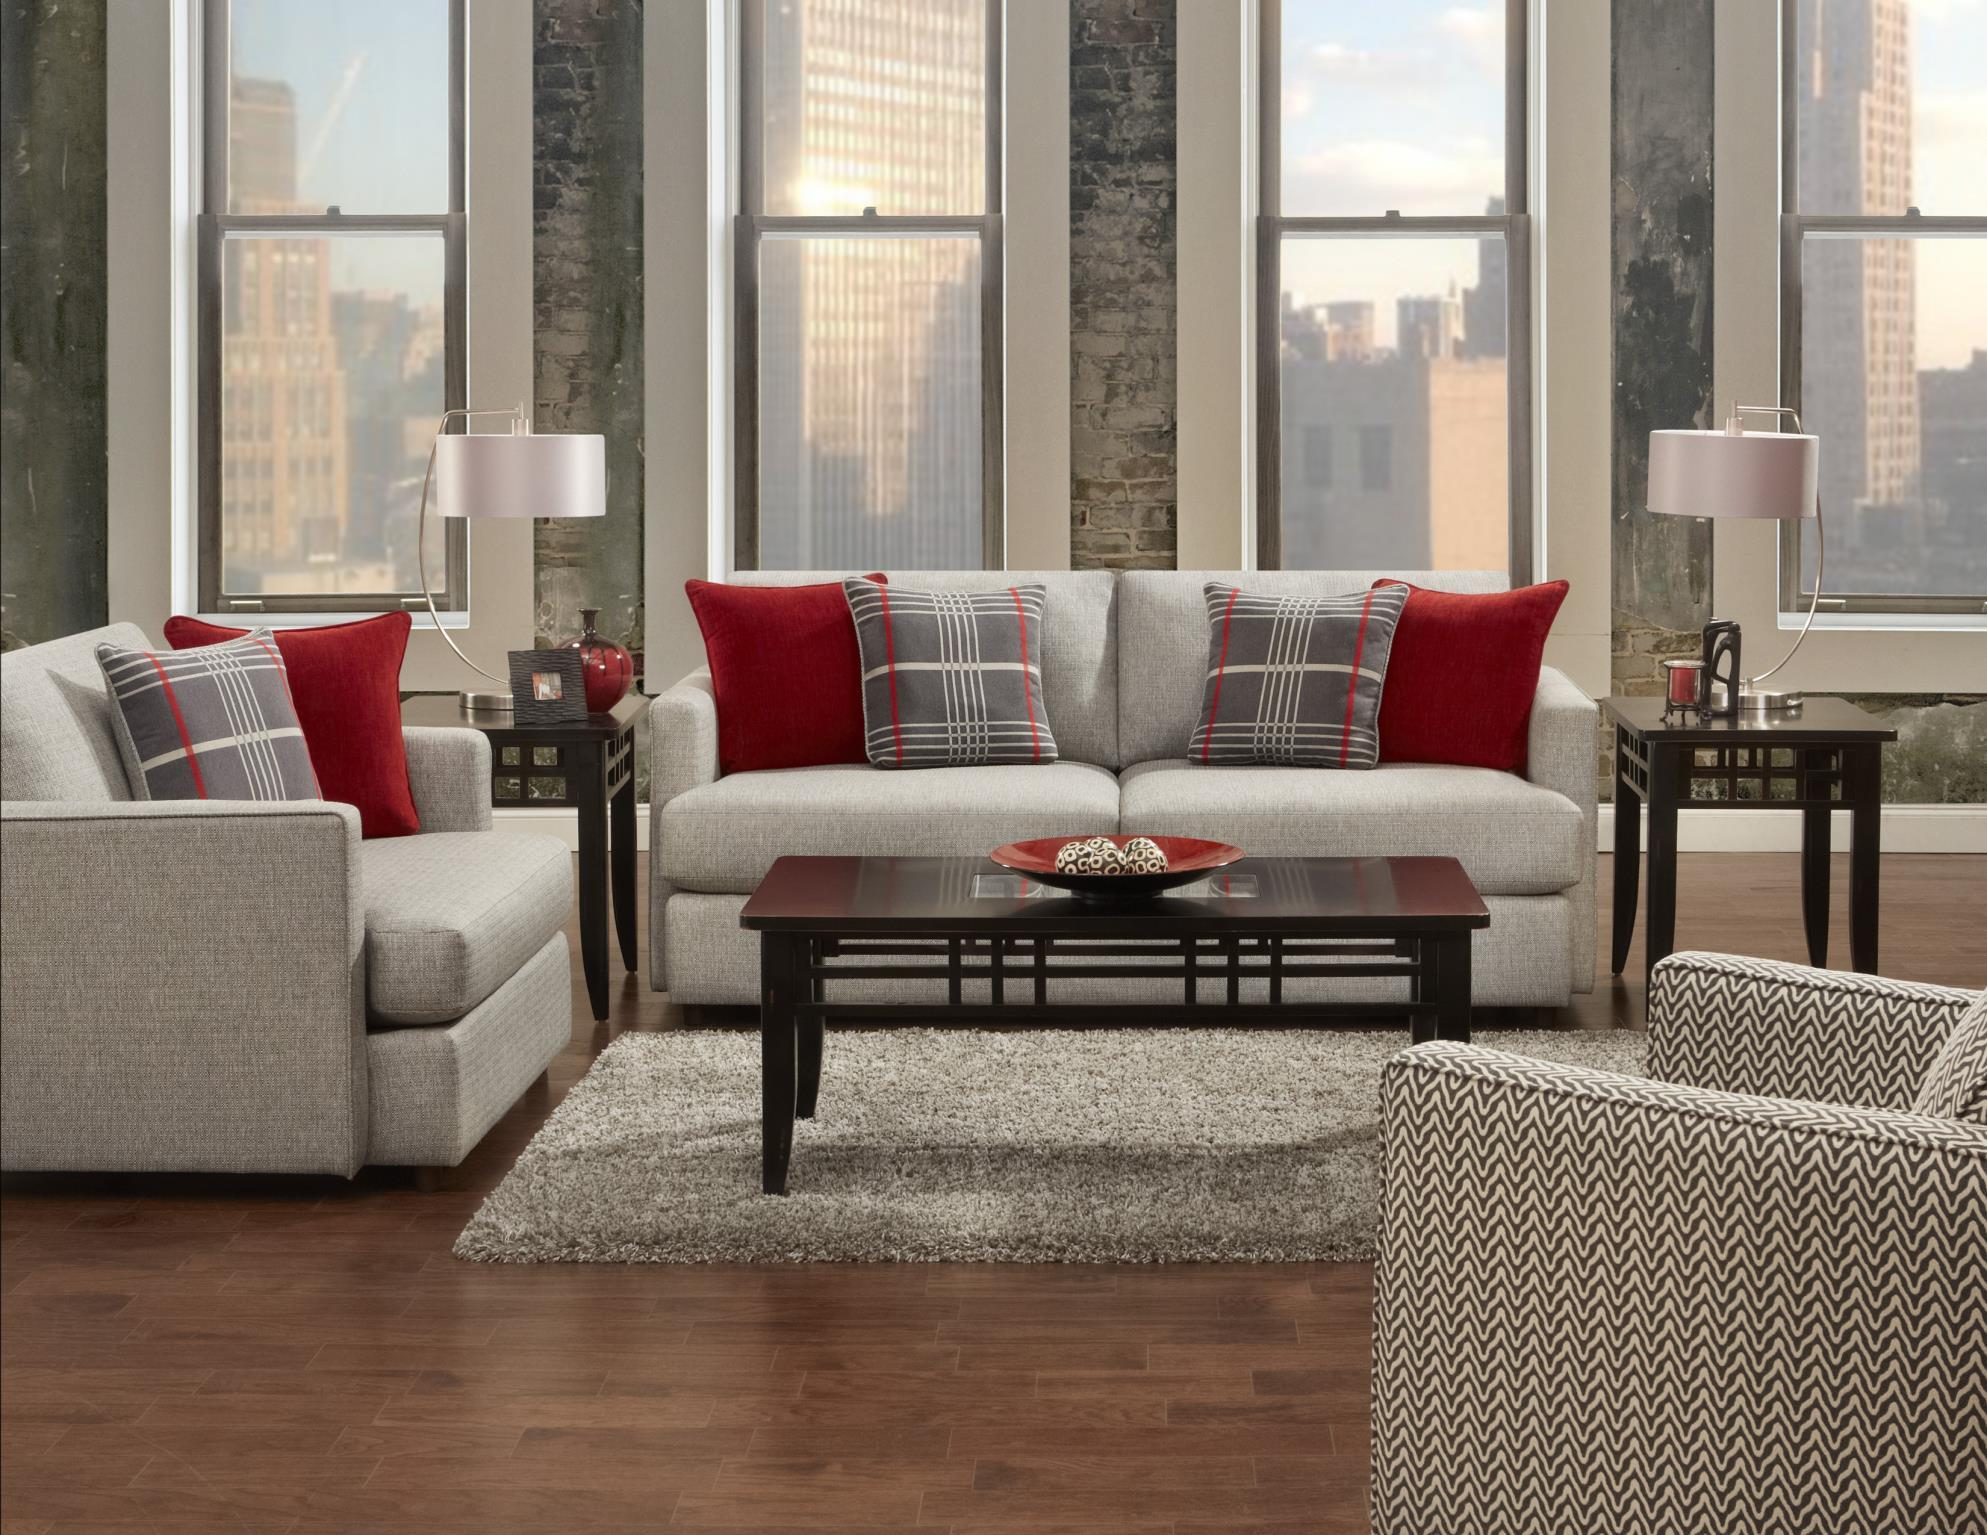 Fusion Furniture Greenwich Stationary Living Room Group - Item Number: 1800 Living Room Group 1